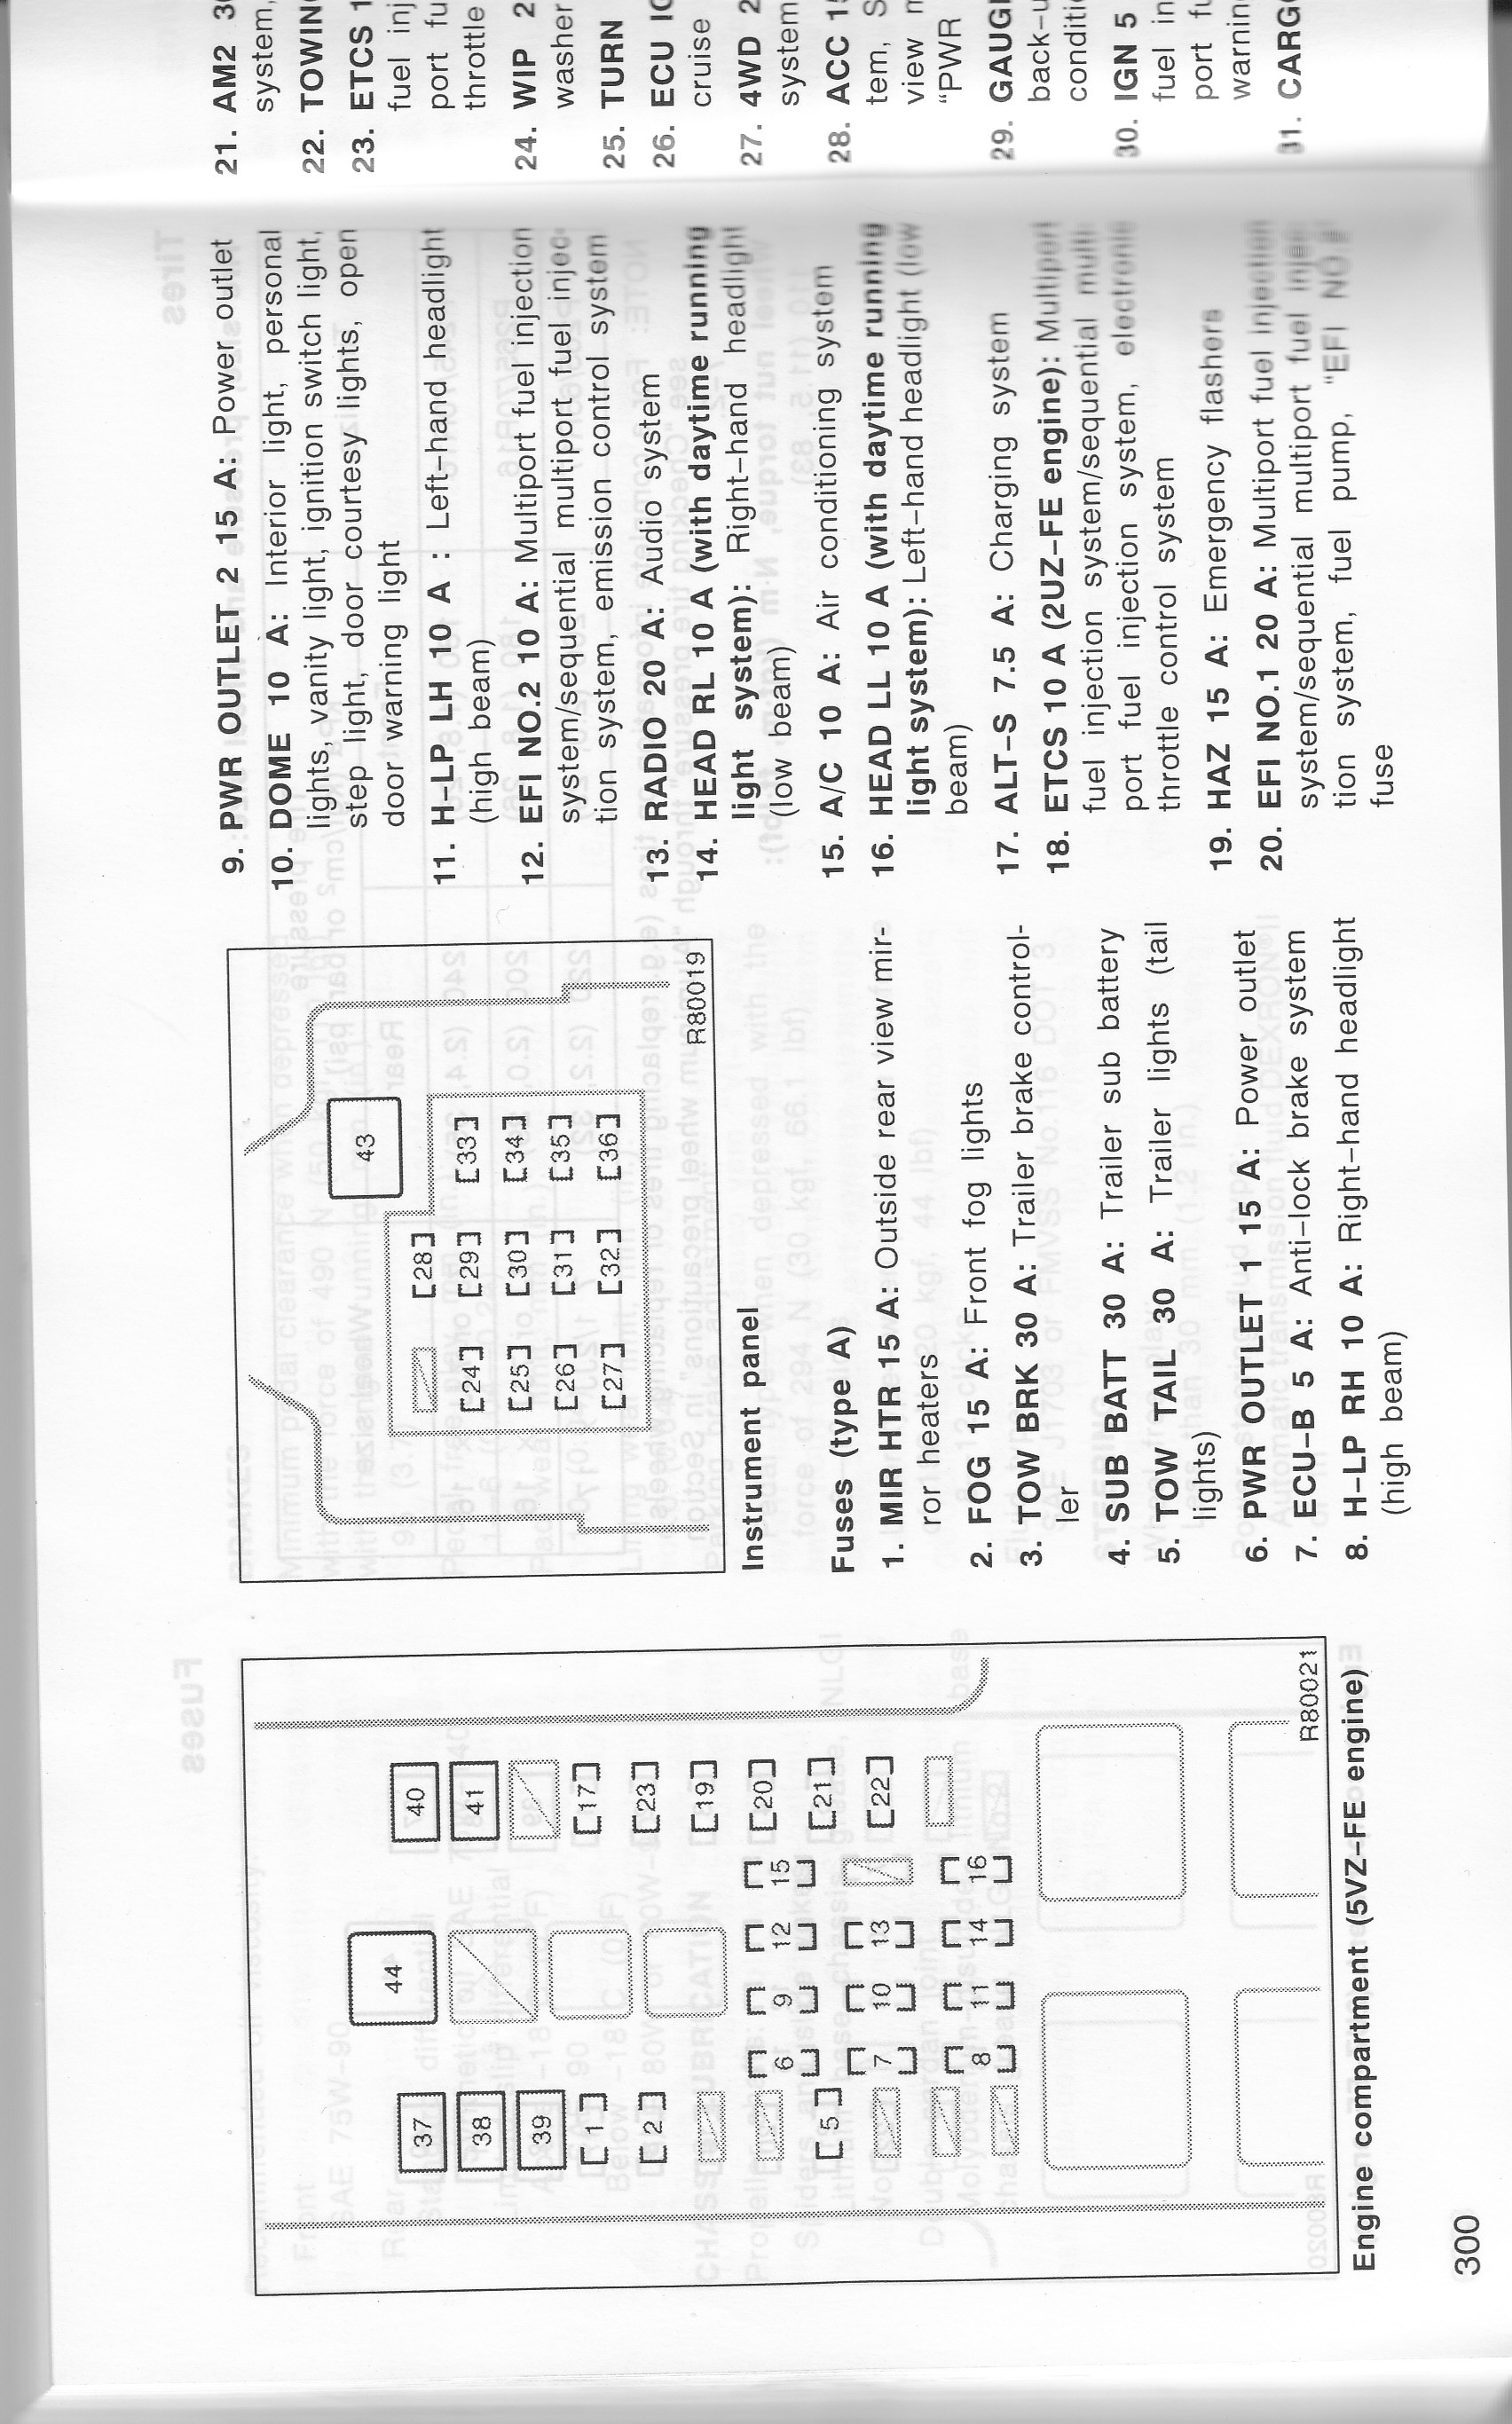 2013 tundra fuse diagram 2013 wiring diagrams